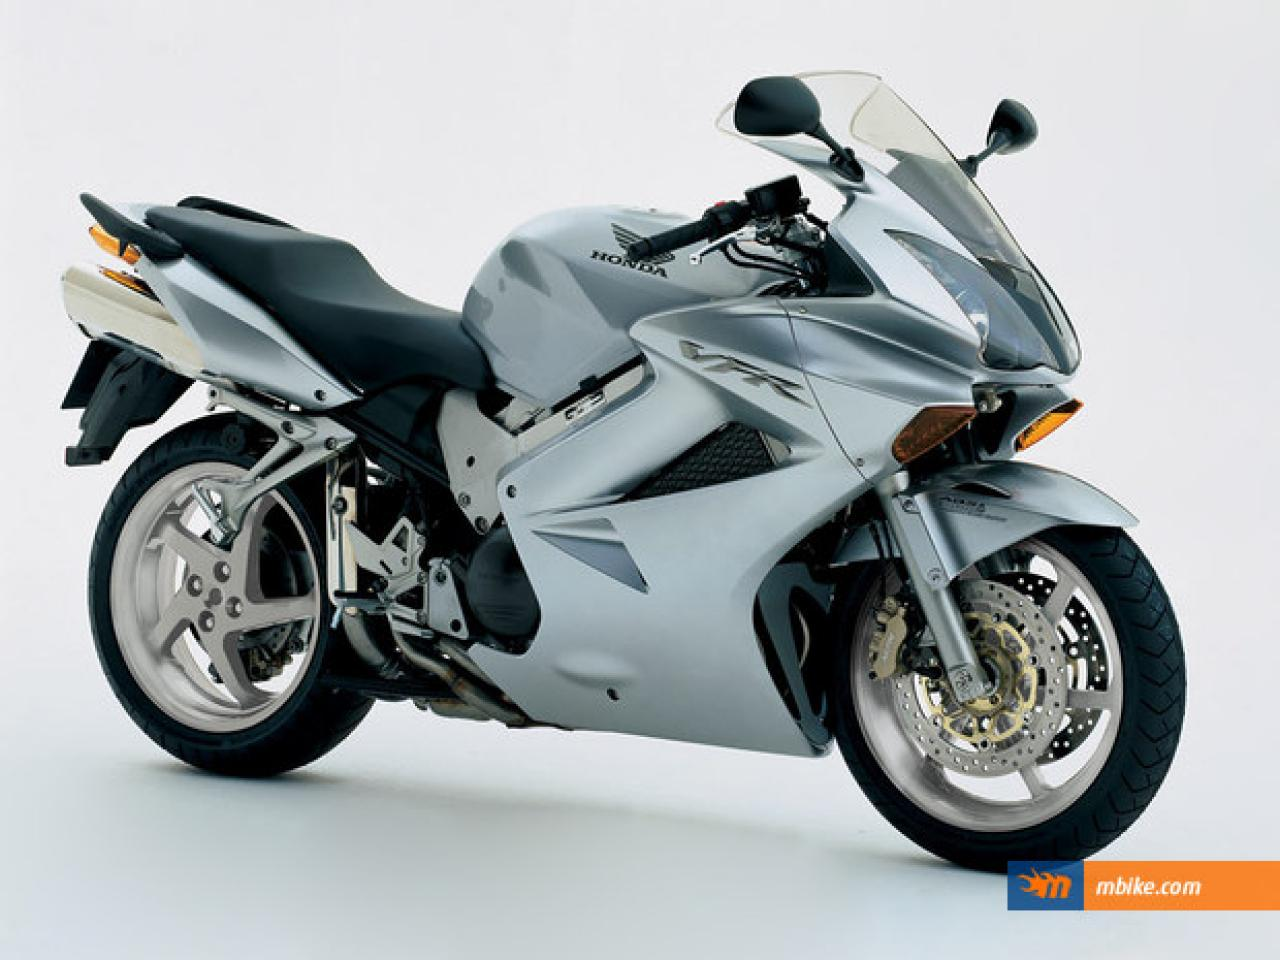 Interceptor Honda 2004 Vfr800